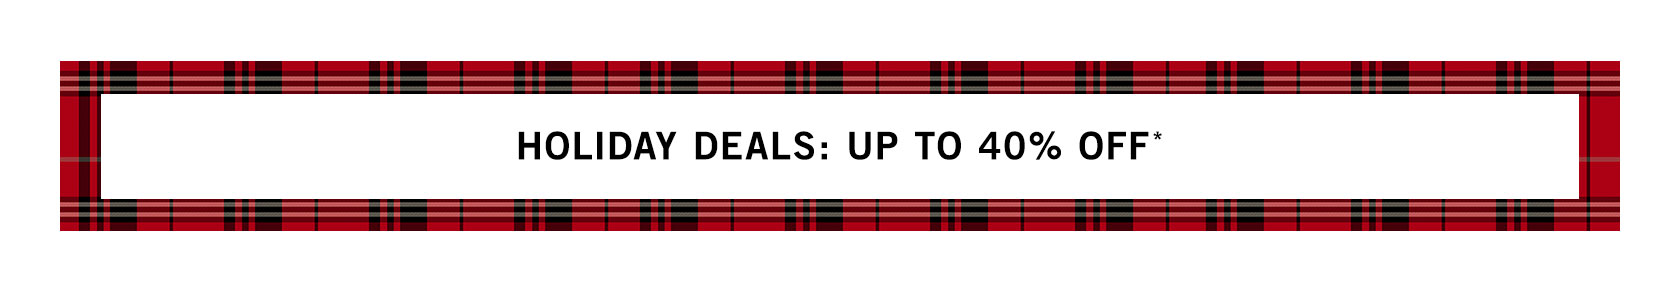 Holiday Daily Deals